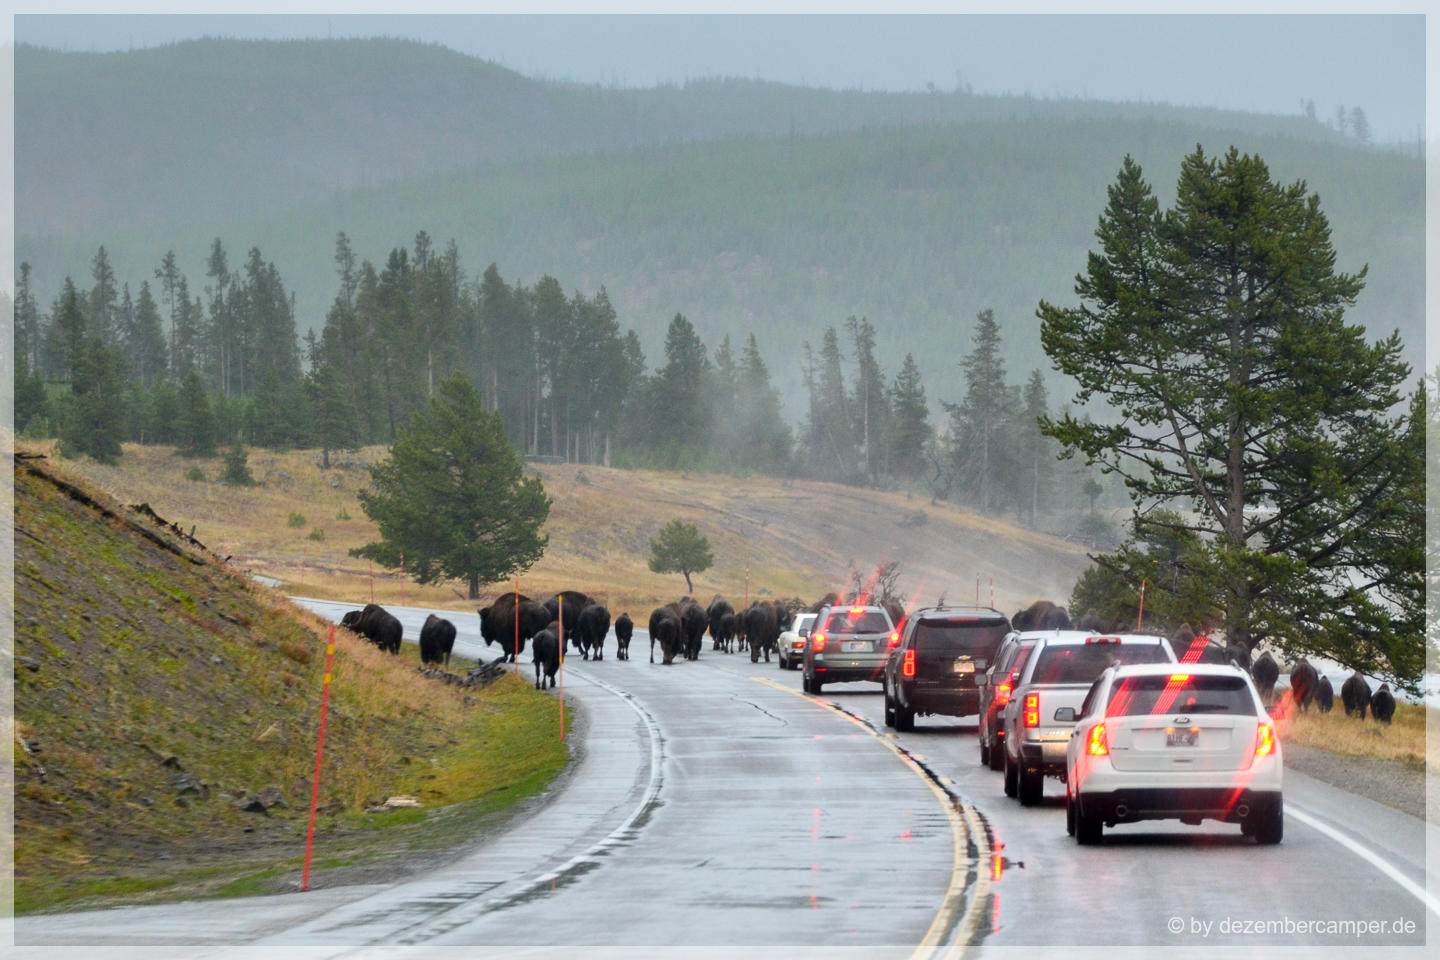 Yellowstone NP - Bisons on the road